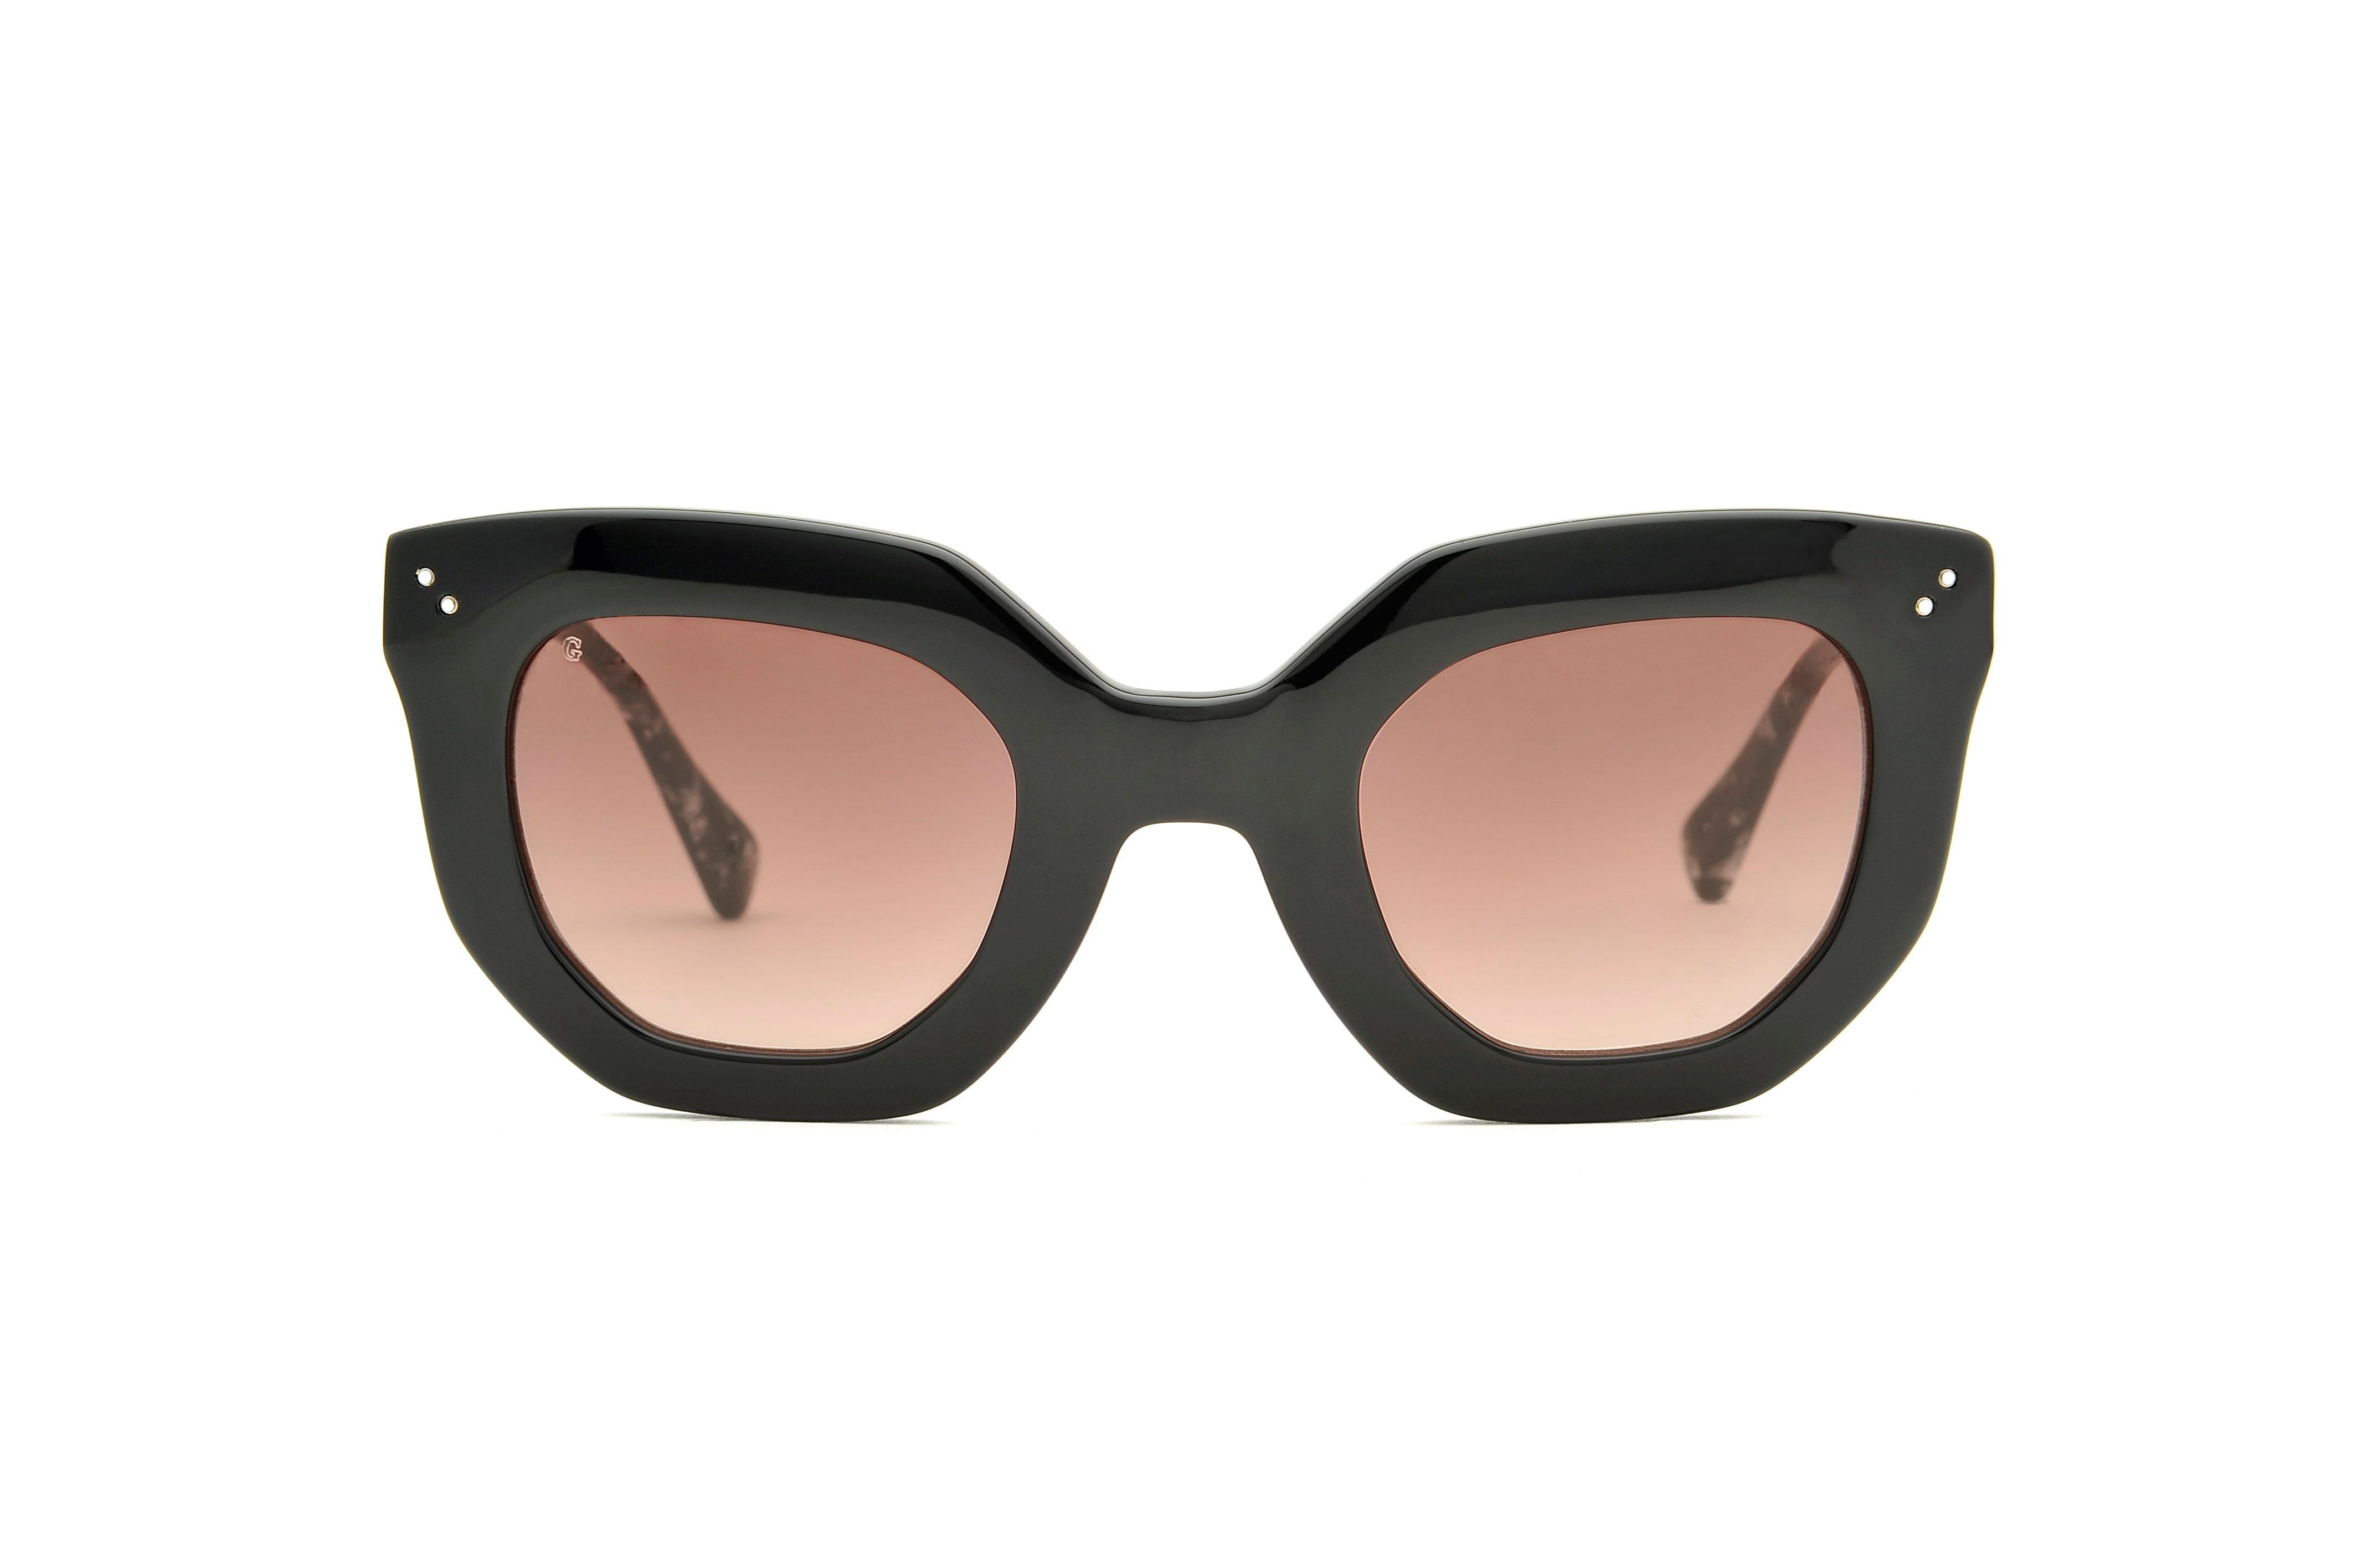 Juliette acetate cat eye black sunglasses by GIGI Studios